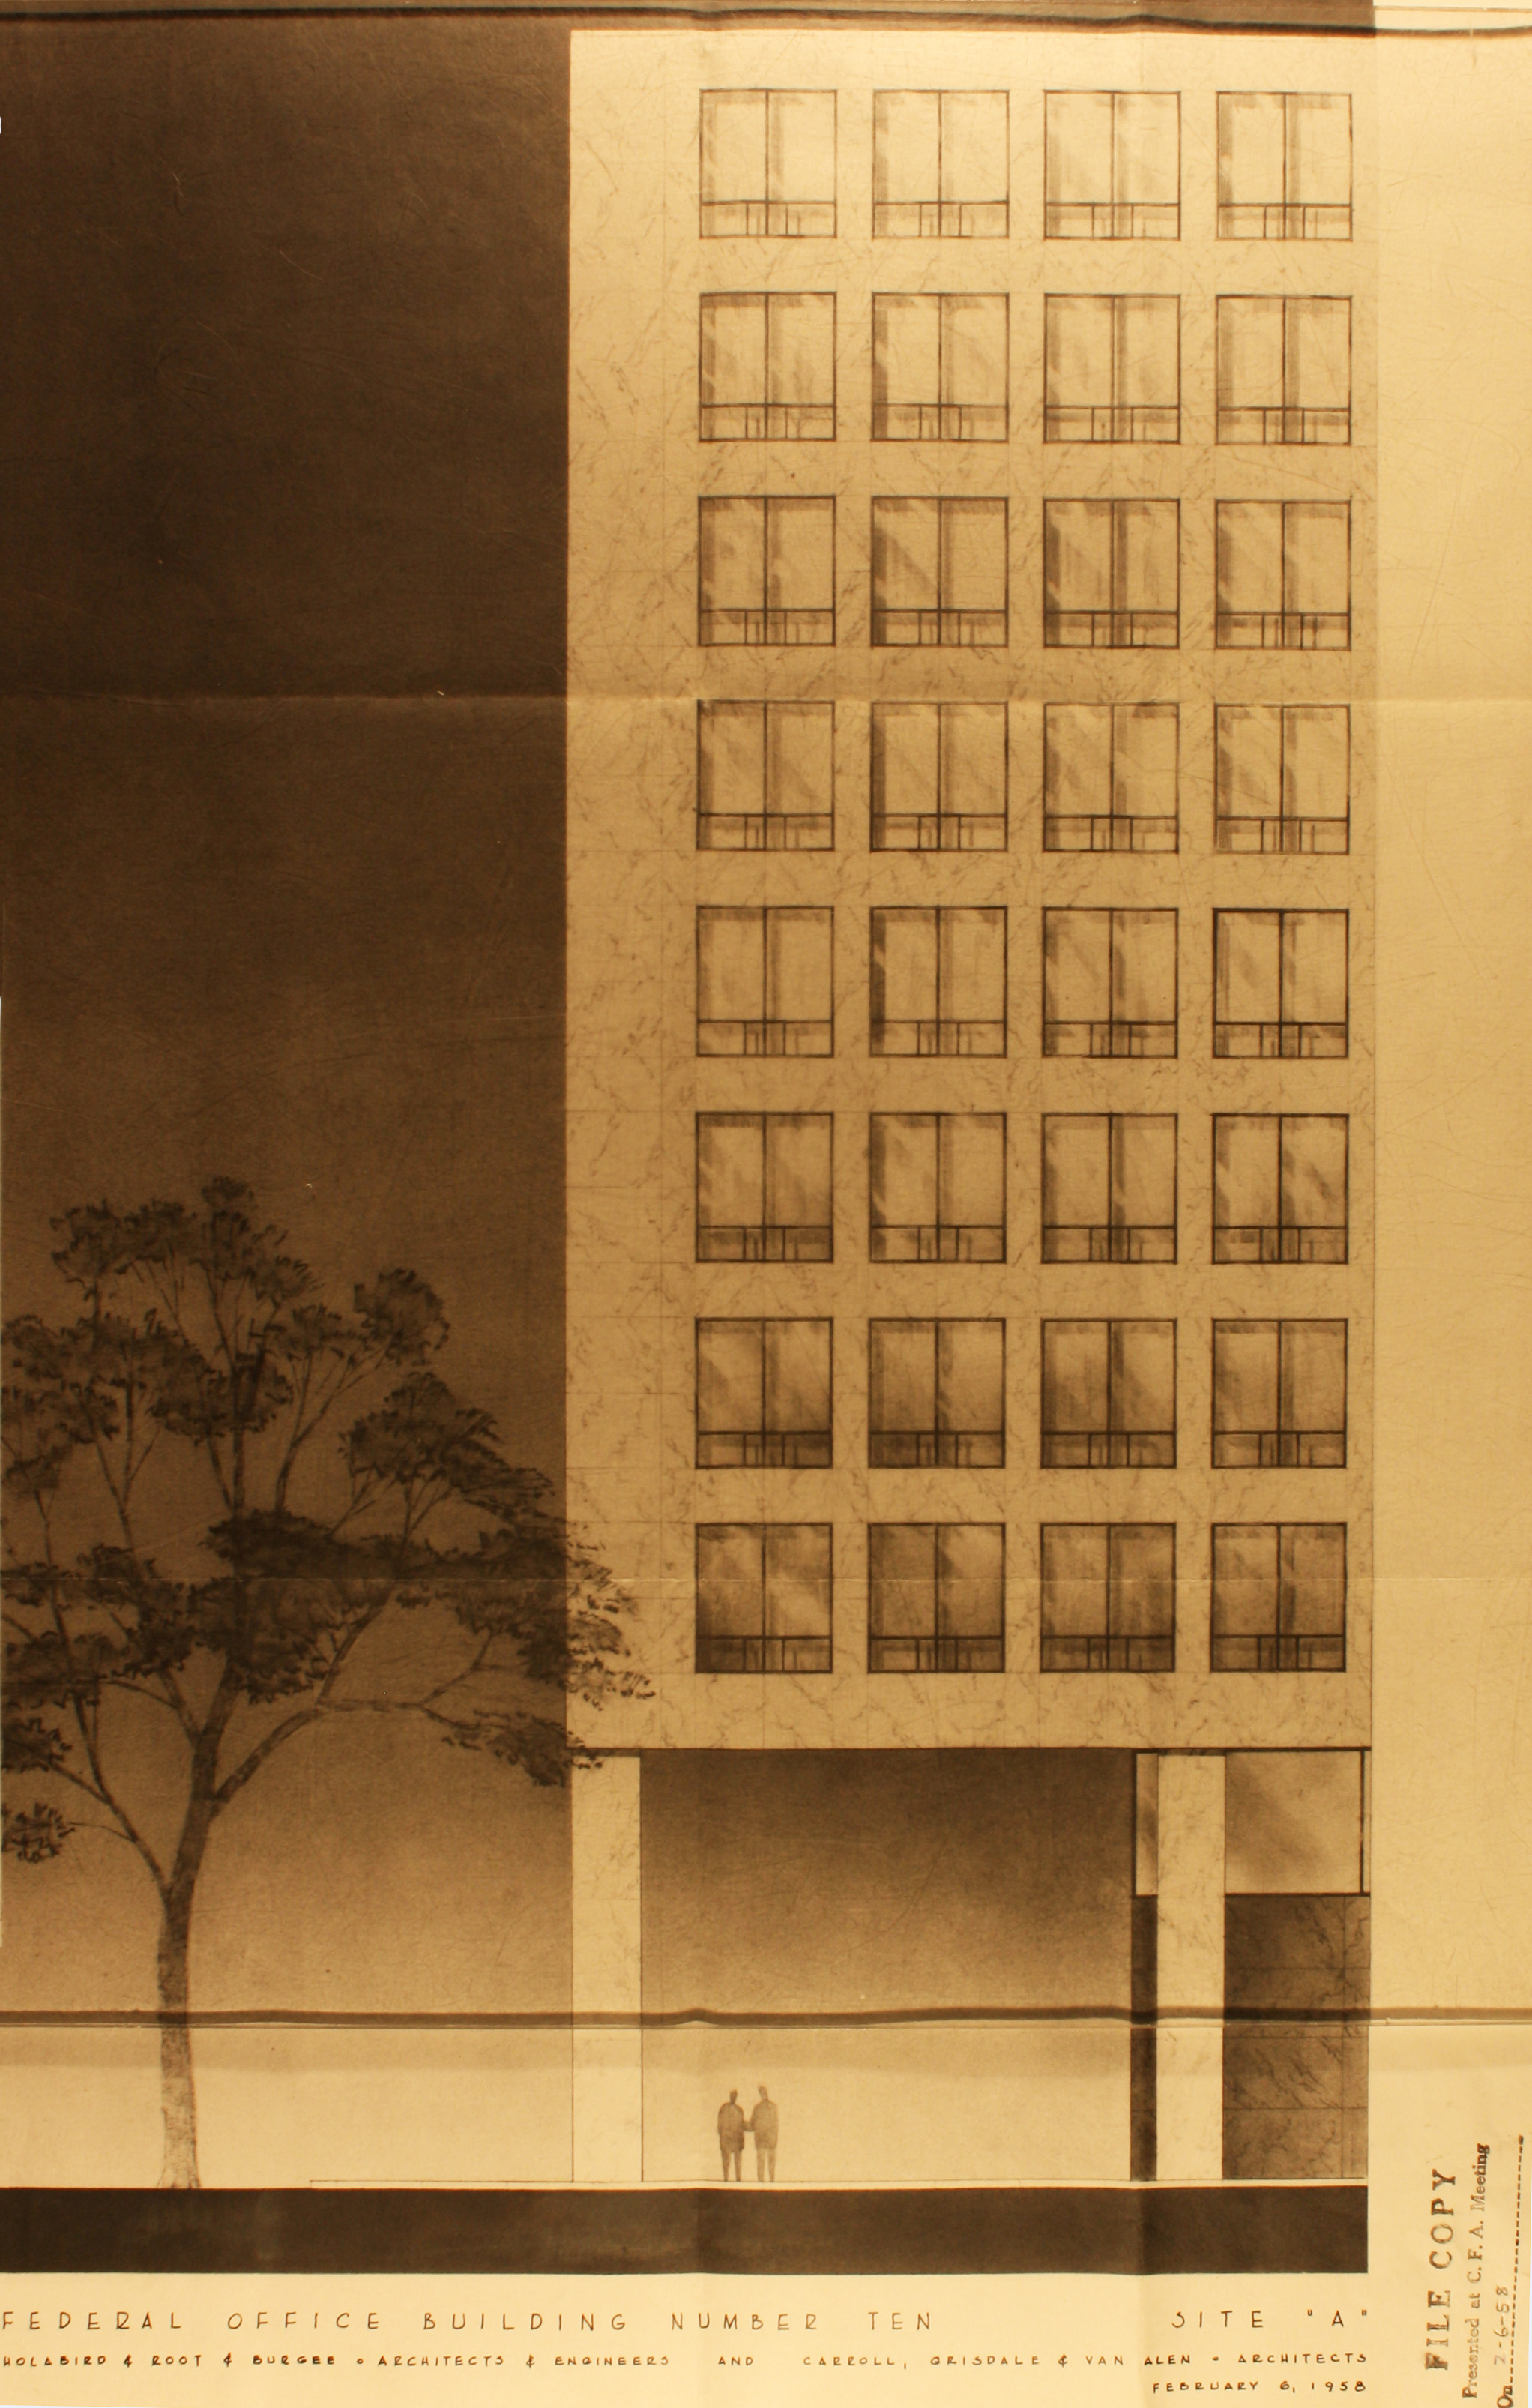 Rendering of the proposed Federal Office Building 10A, presented to the U.S. Commission of Fine Art in 1958.